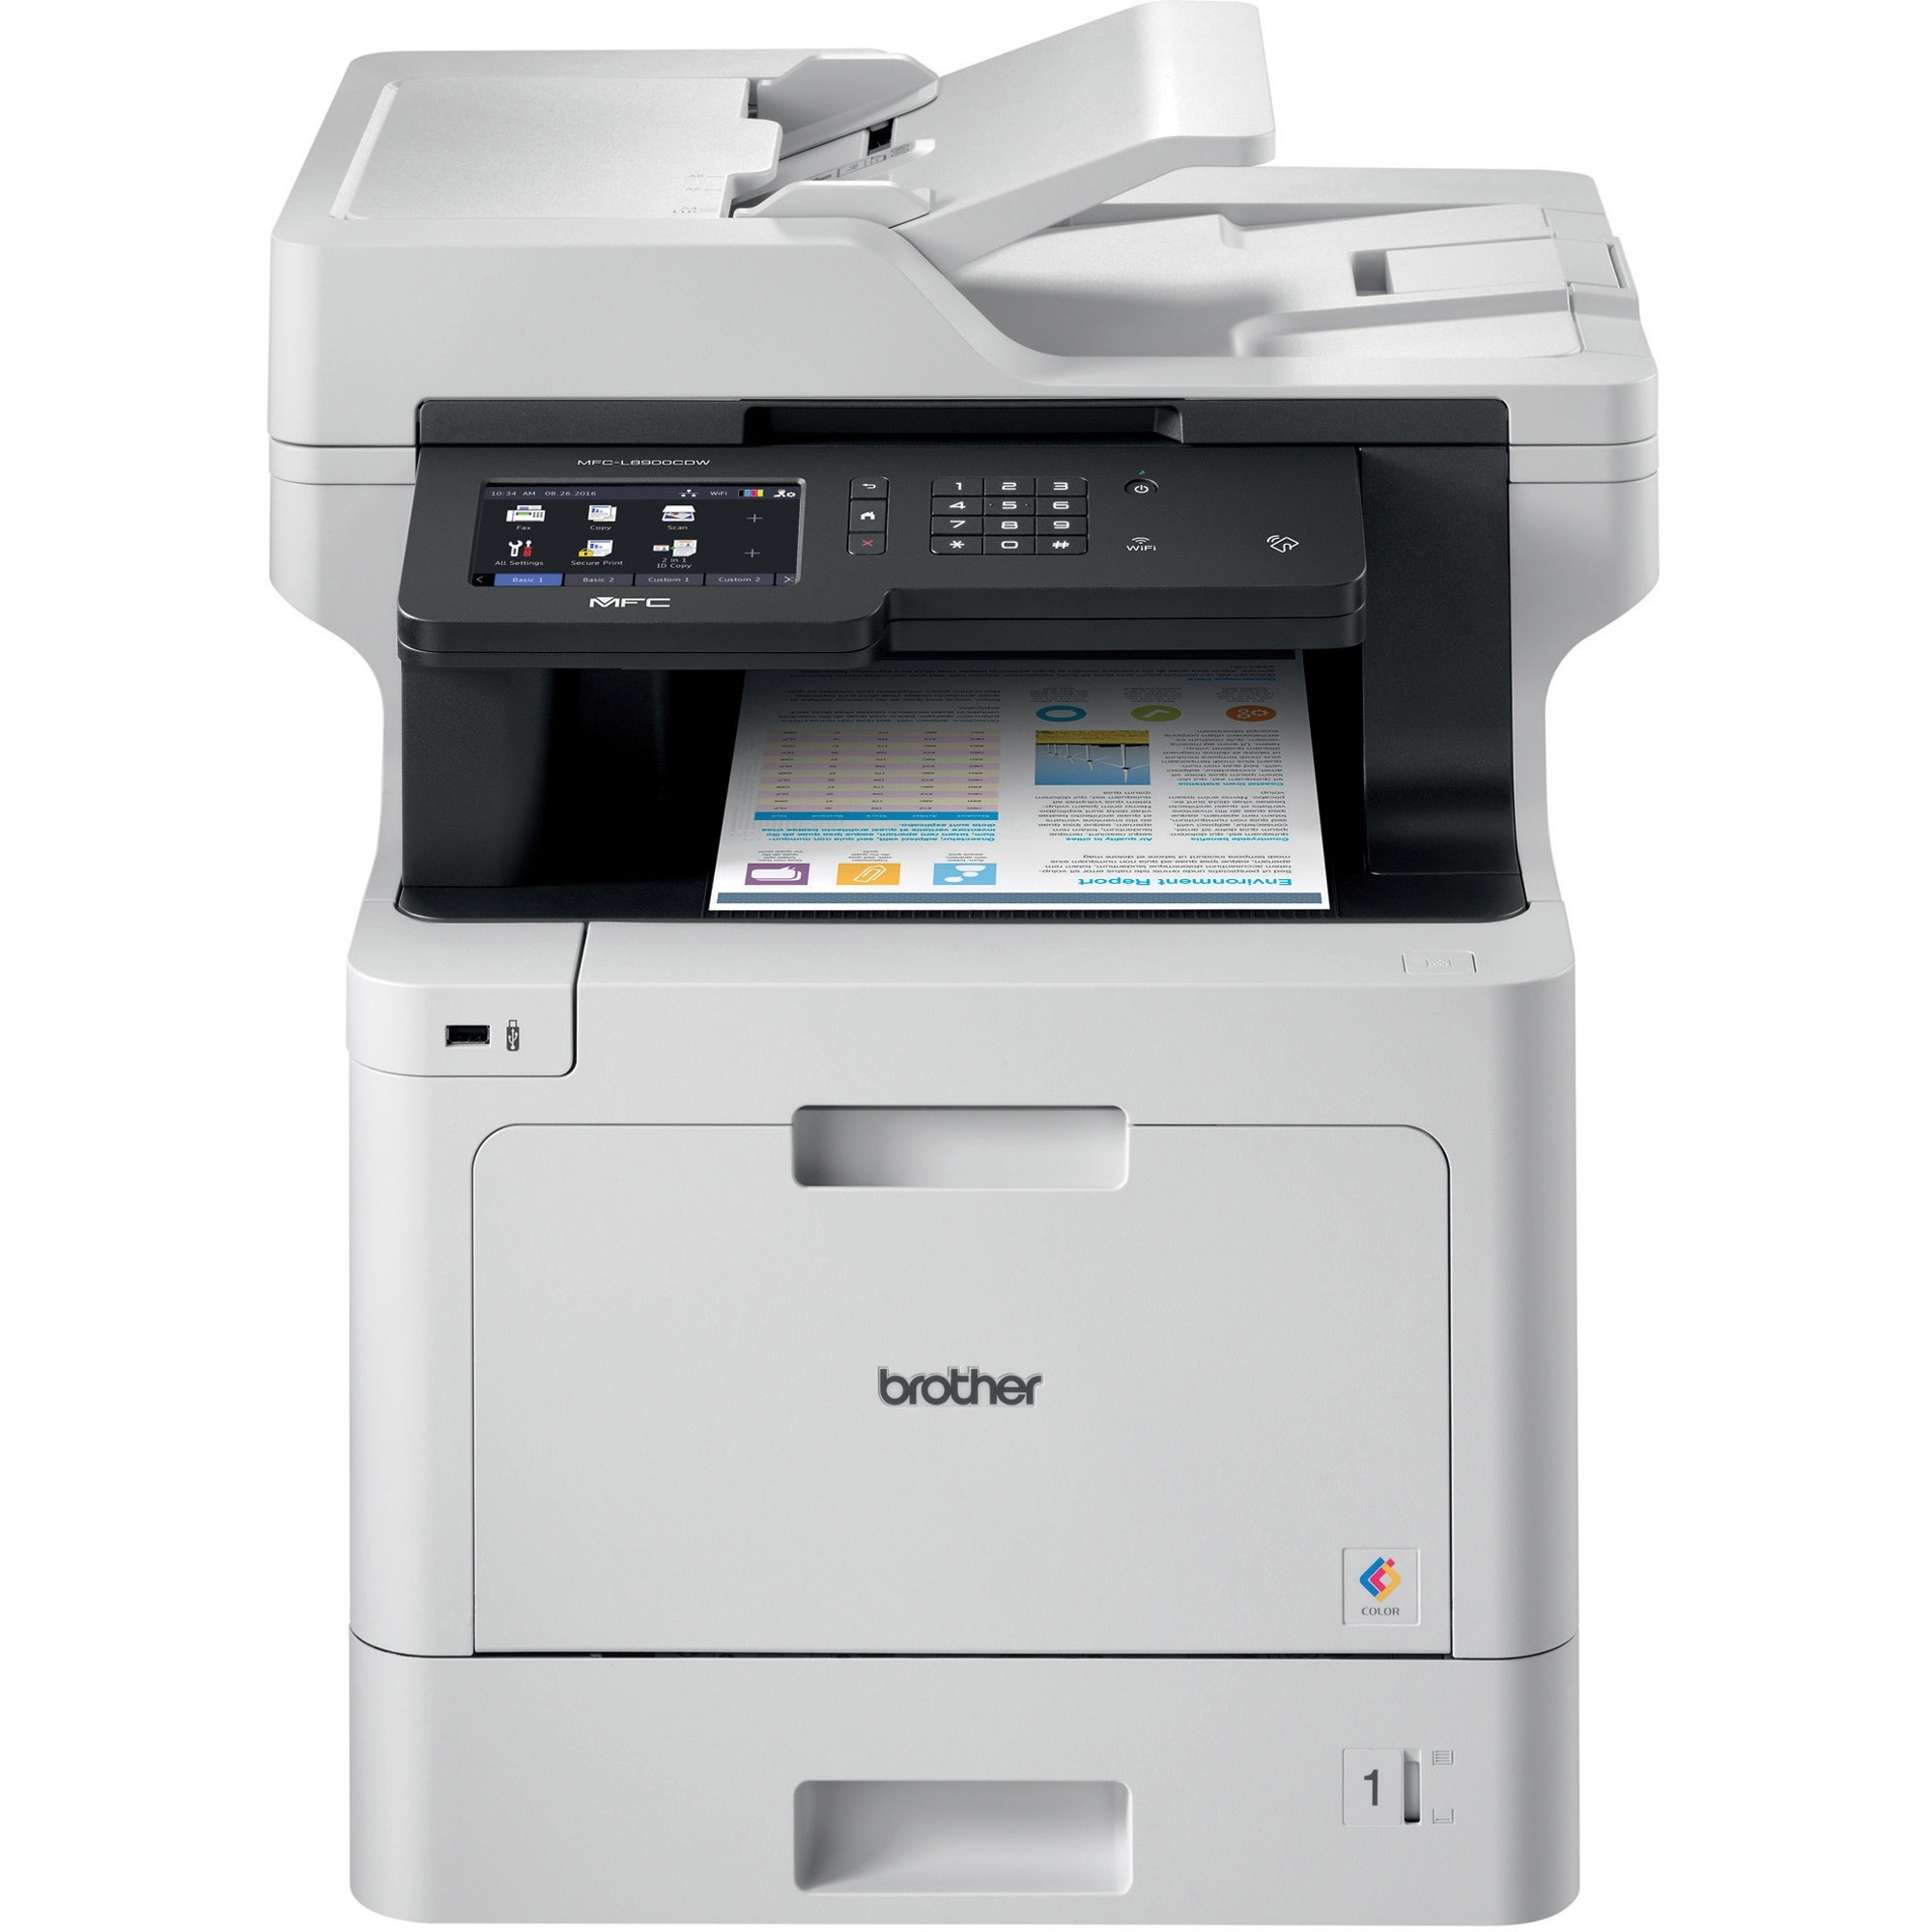 Brother MFC-L8900CDW Laser All-in-One Multifunction Printer